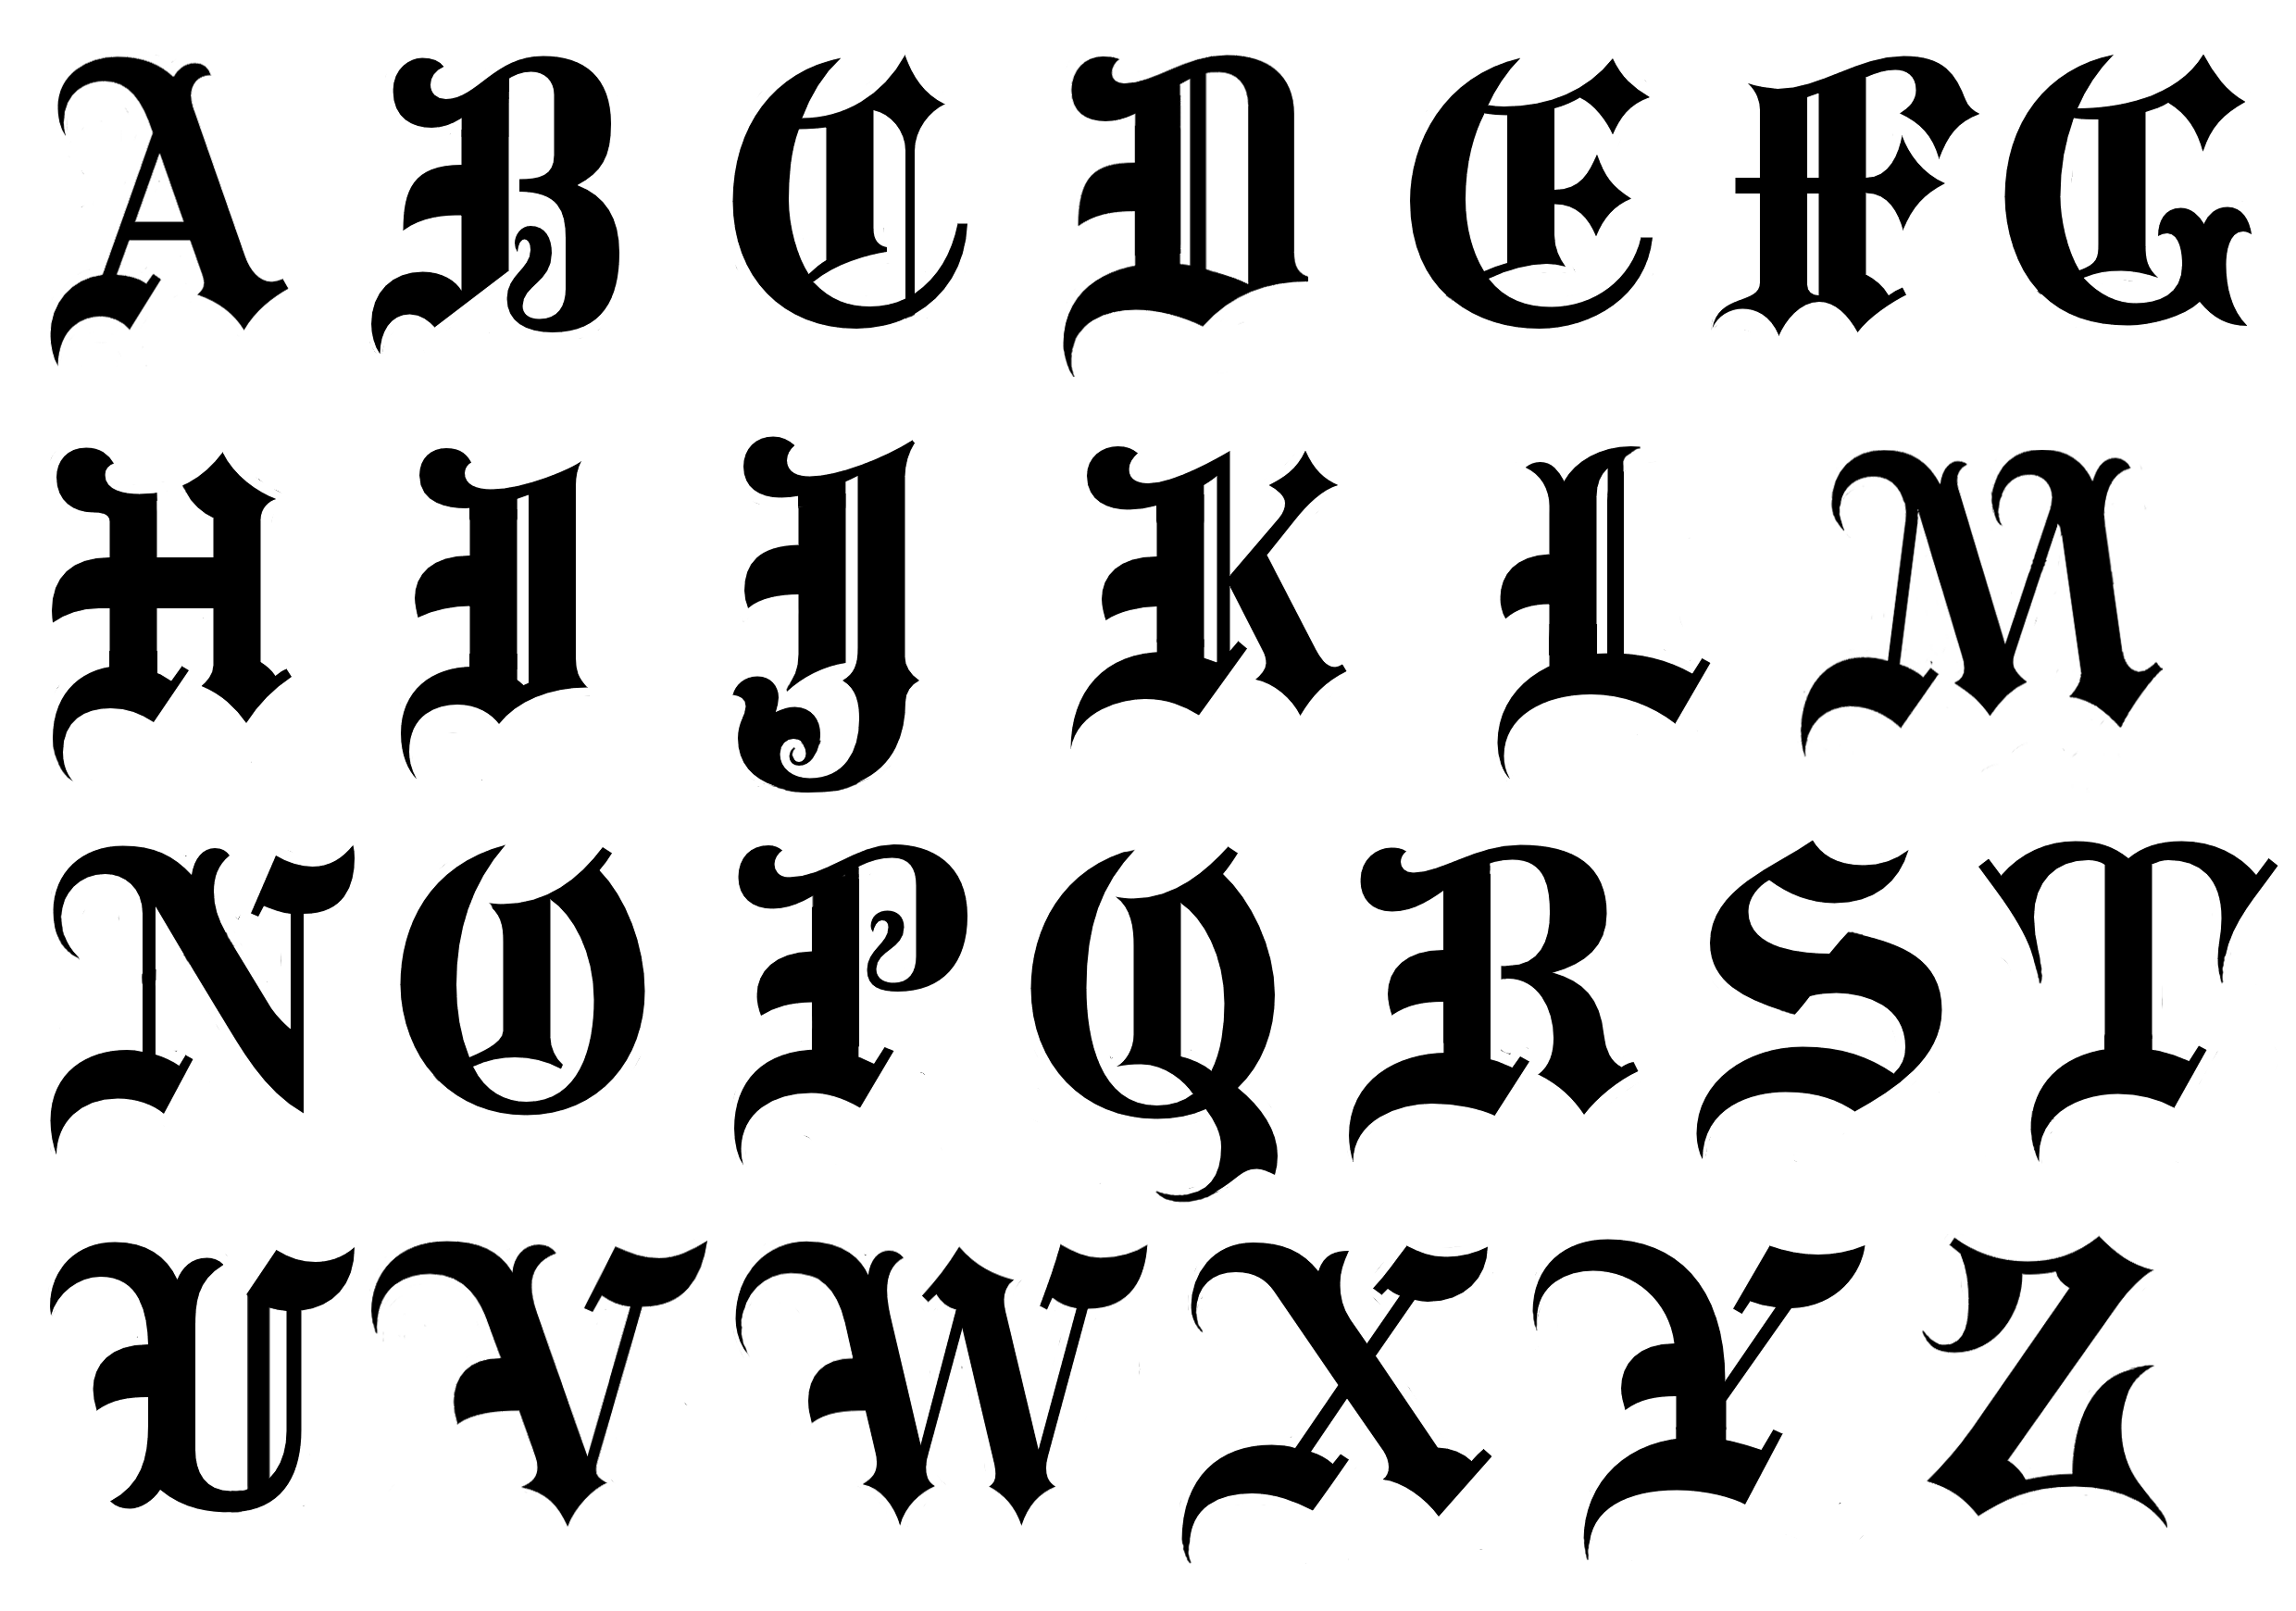 Free goth alphabet png. Letters related keywords suggestions